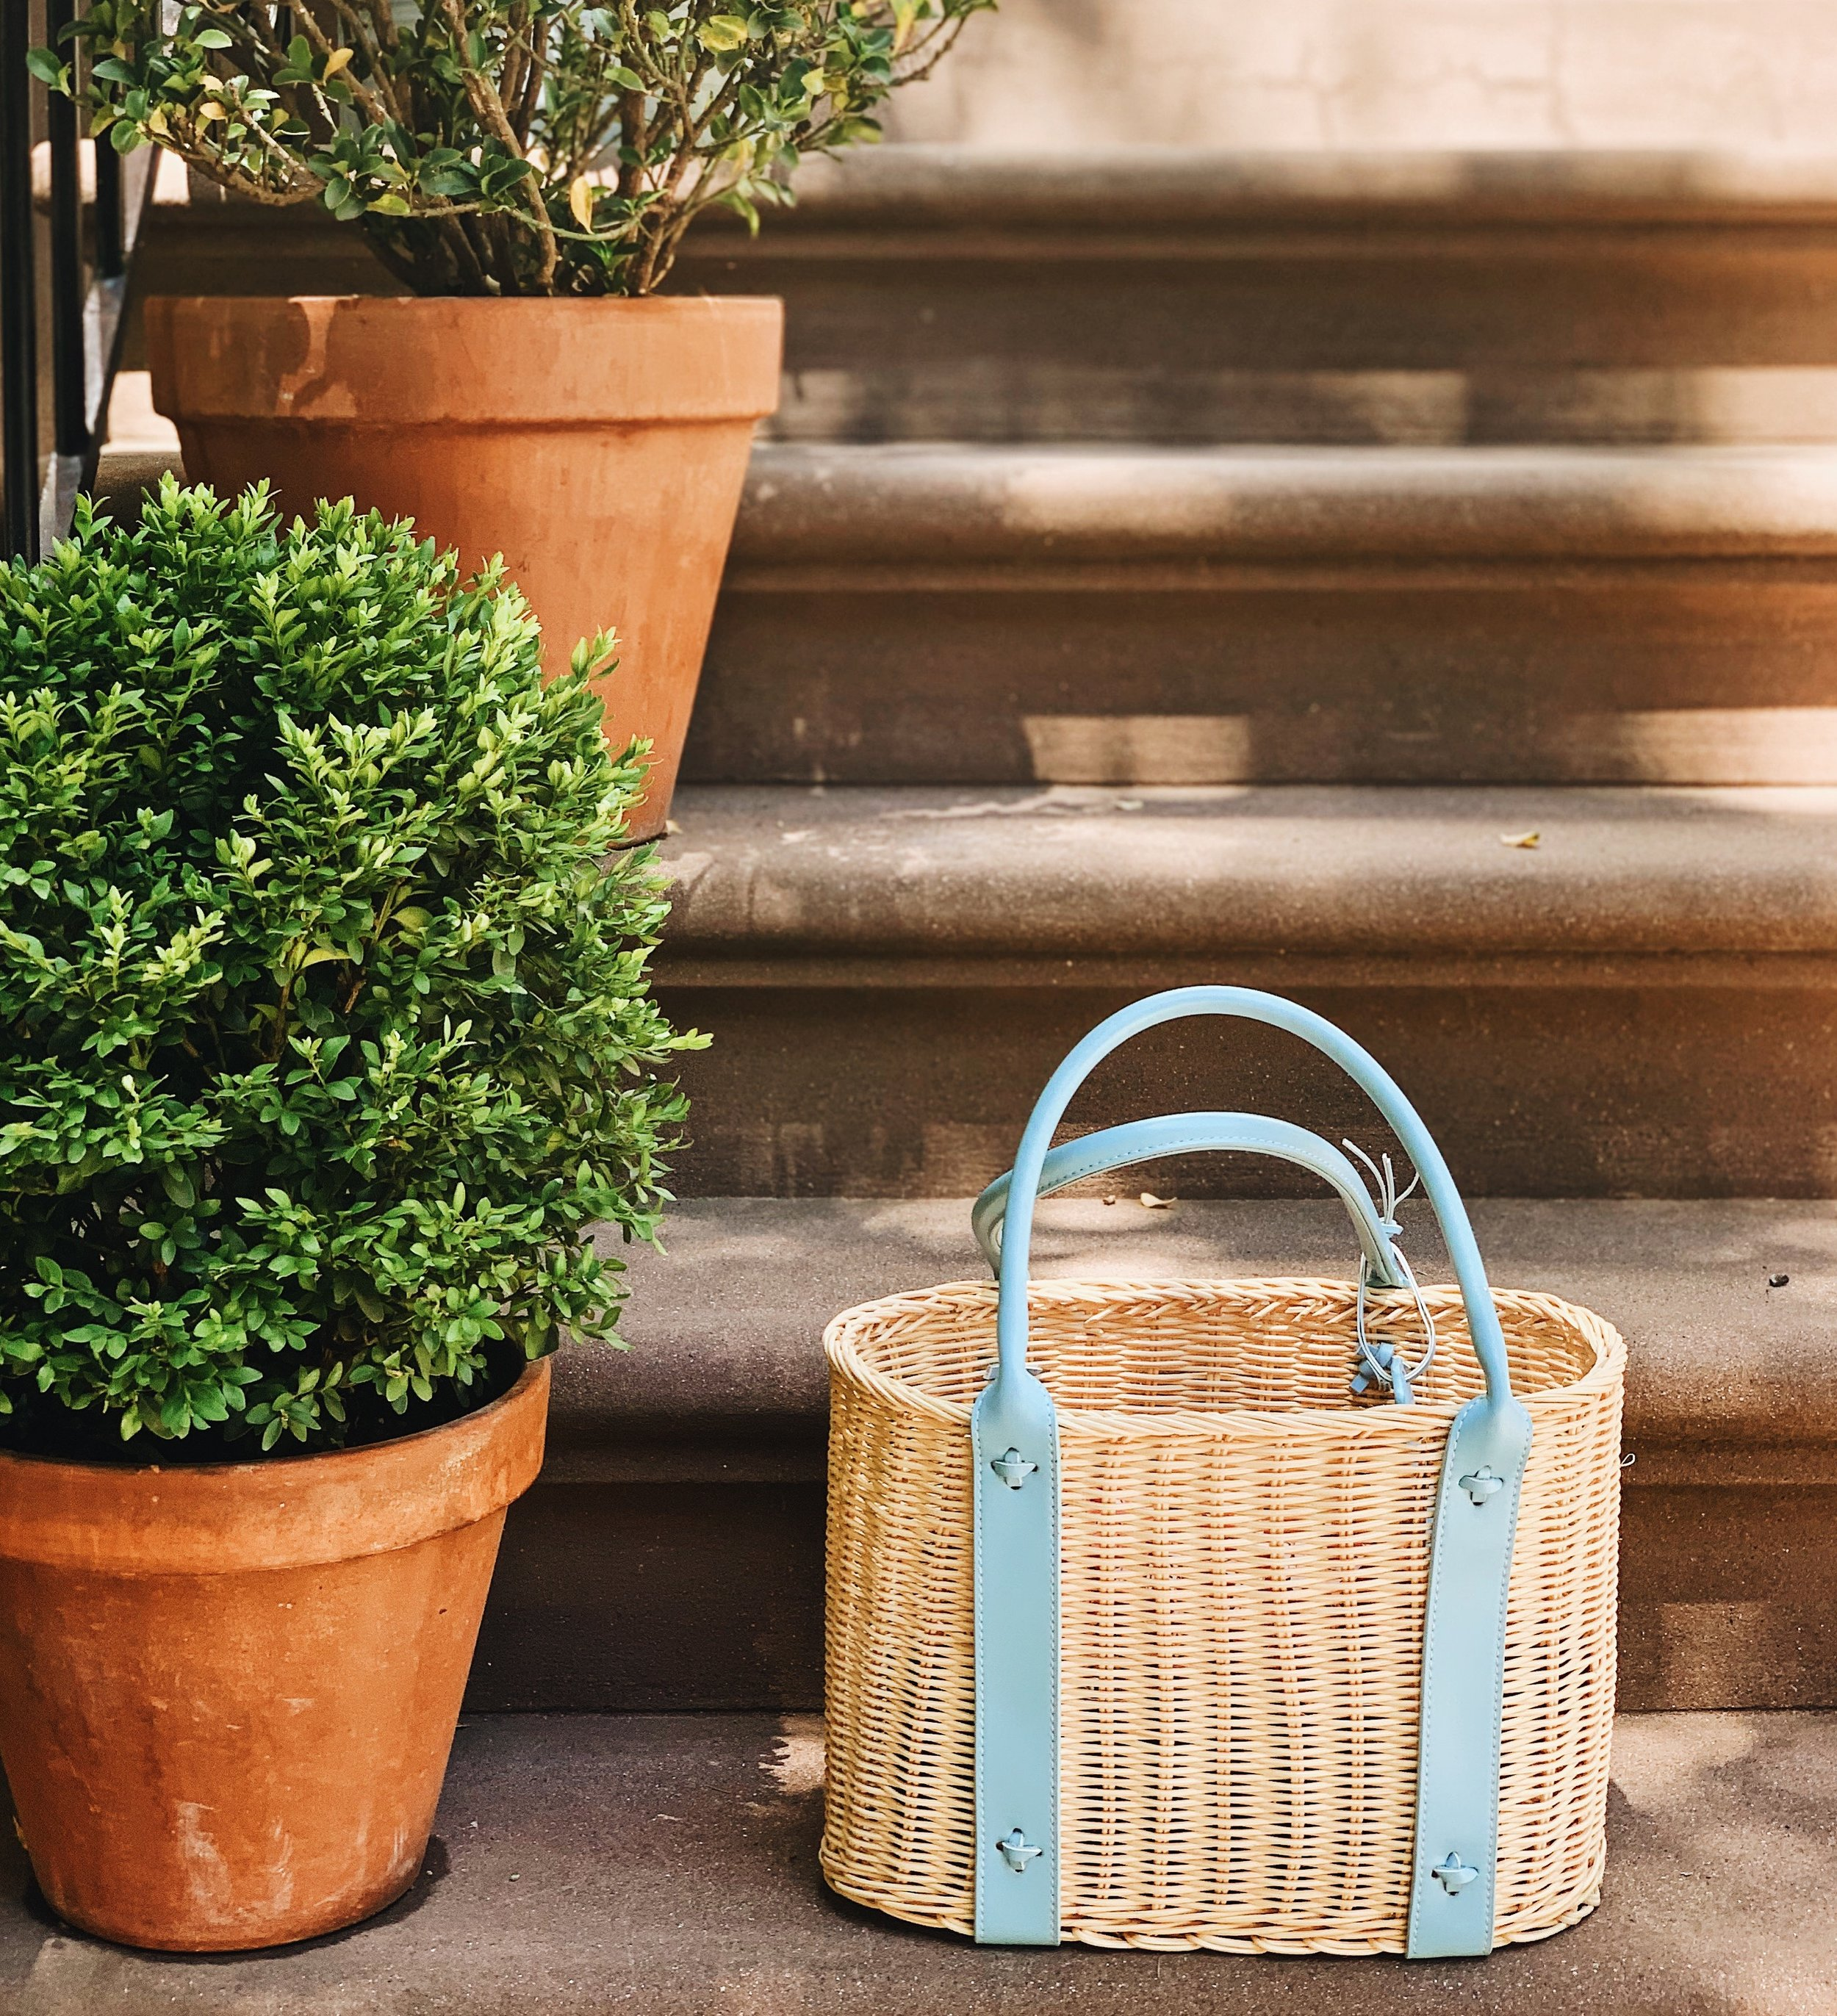 Bag shown:  Palm Beach Tote by Amanda Lindroth